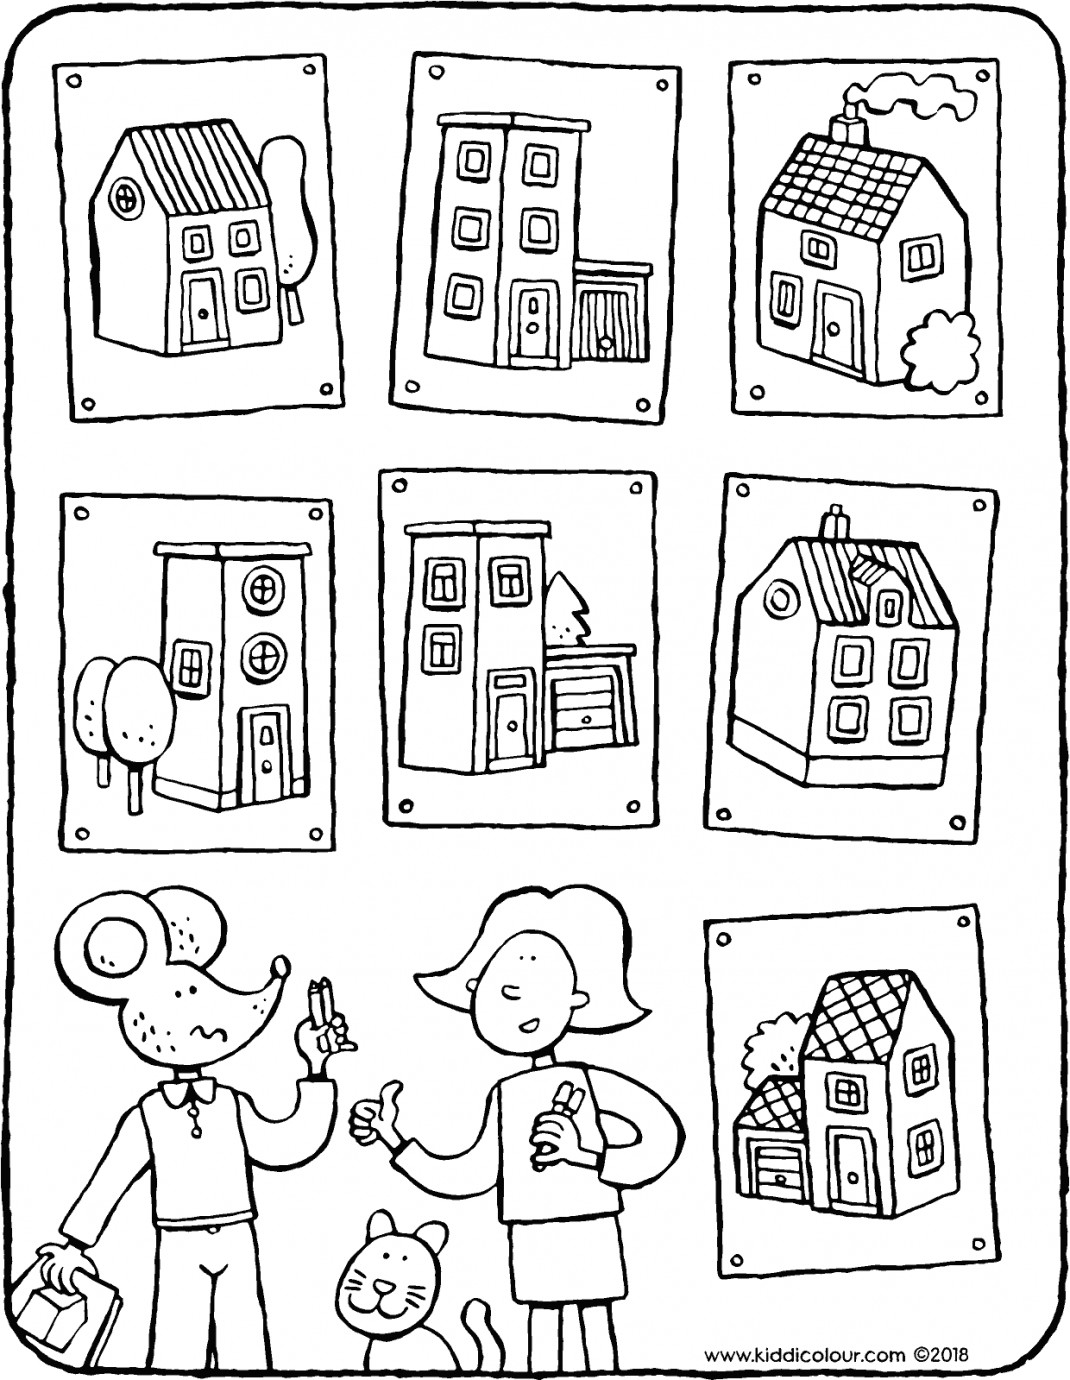 find the right houses colouring page drawing picture 01kV